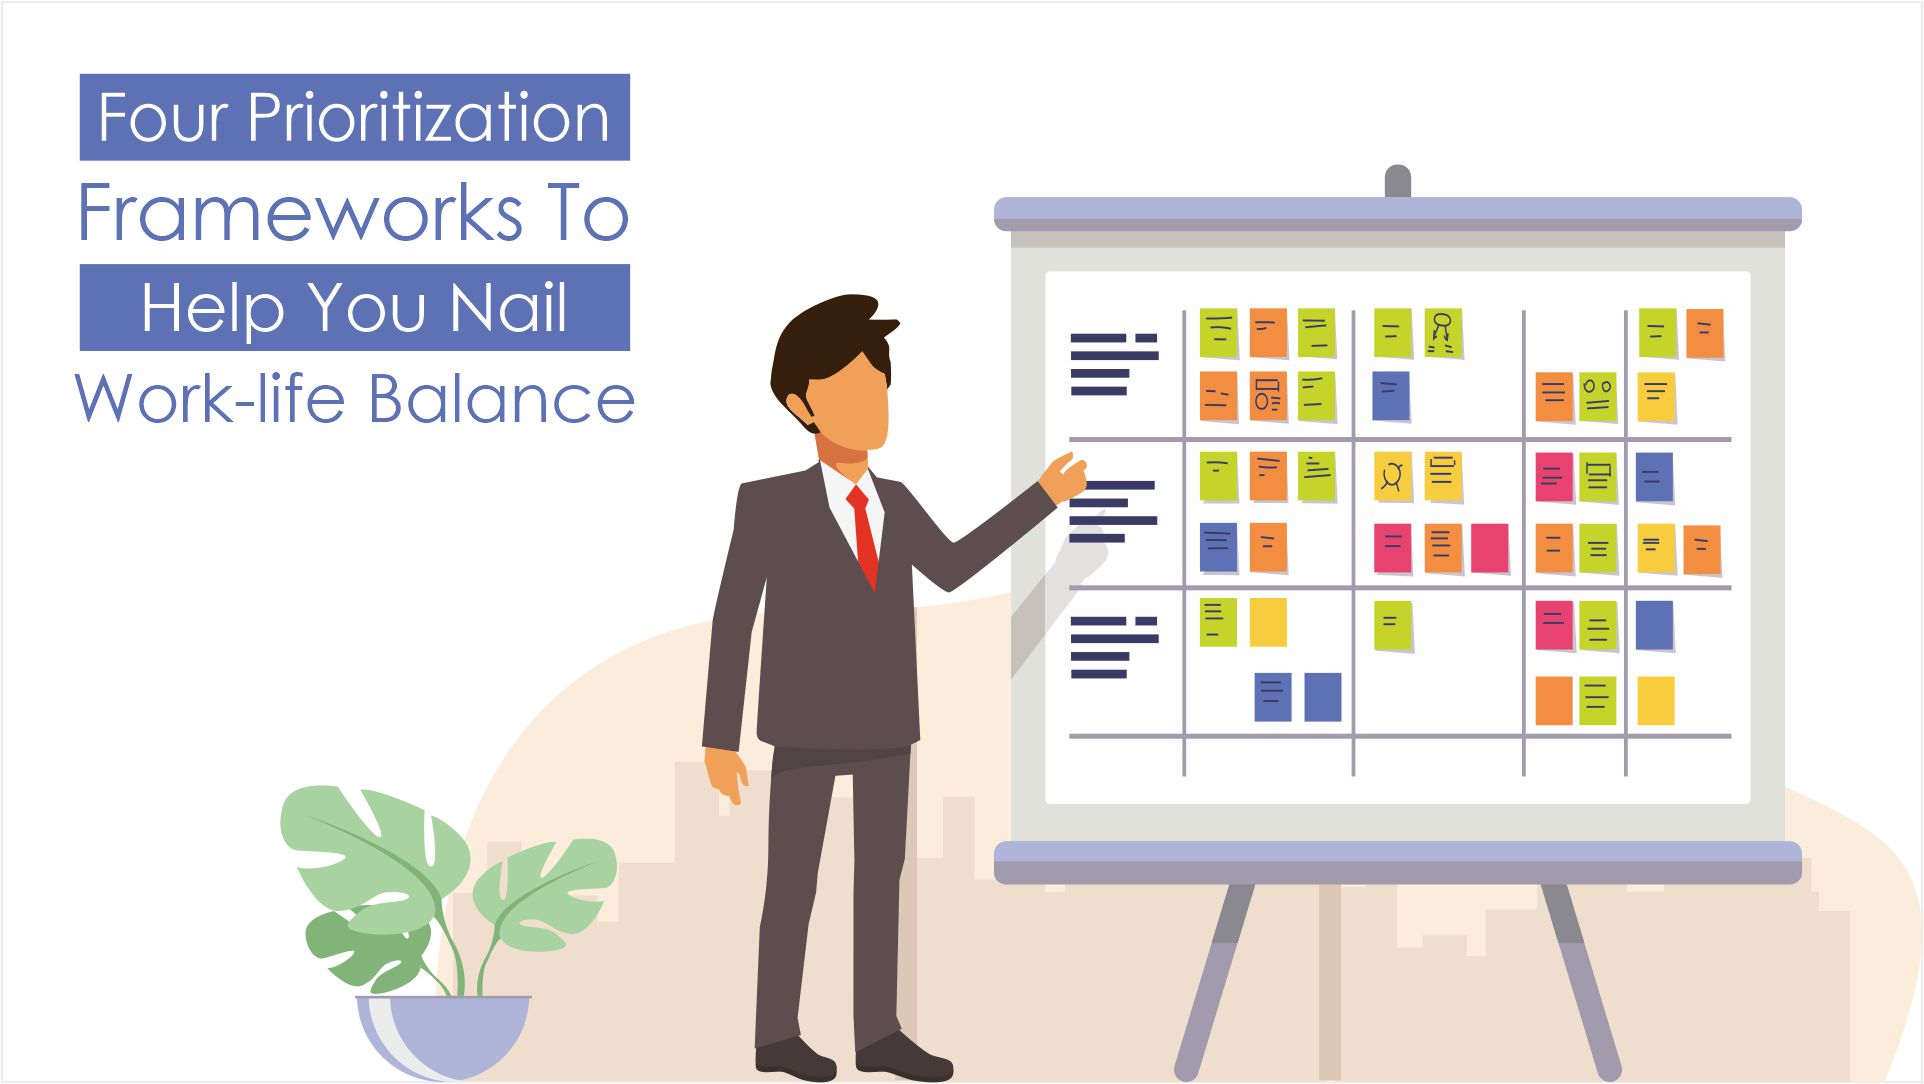 Four Prioritization Frameworks To Help You Nail Work-Life Balance